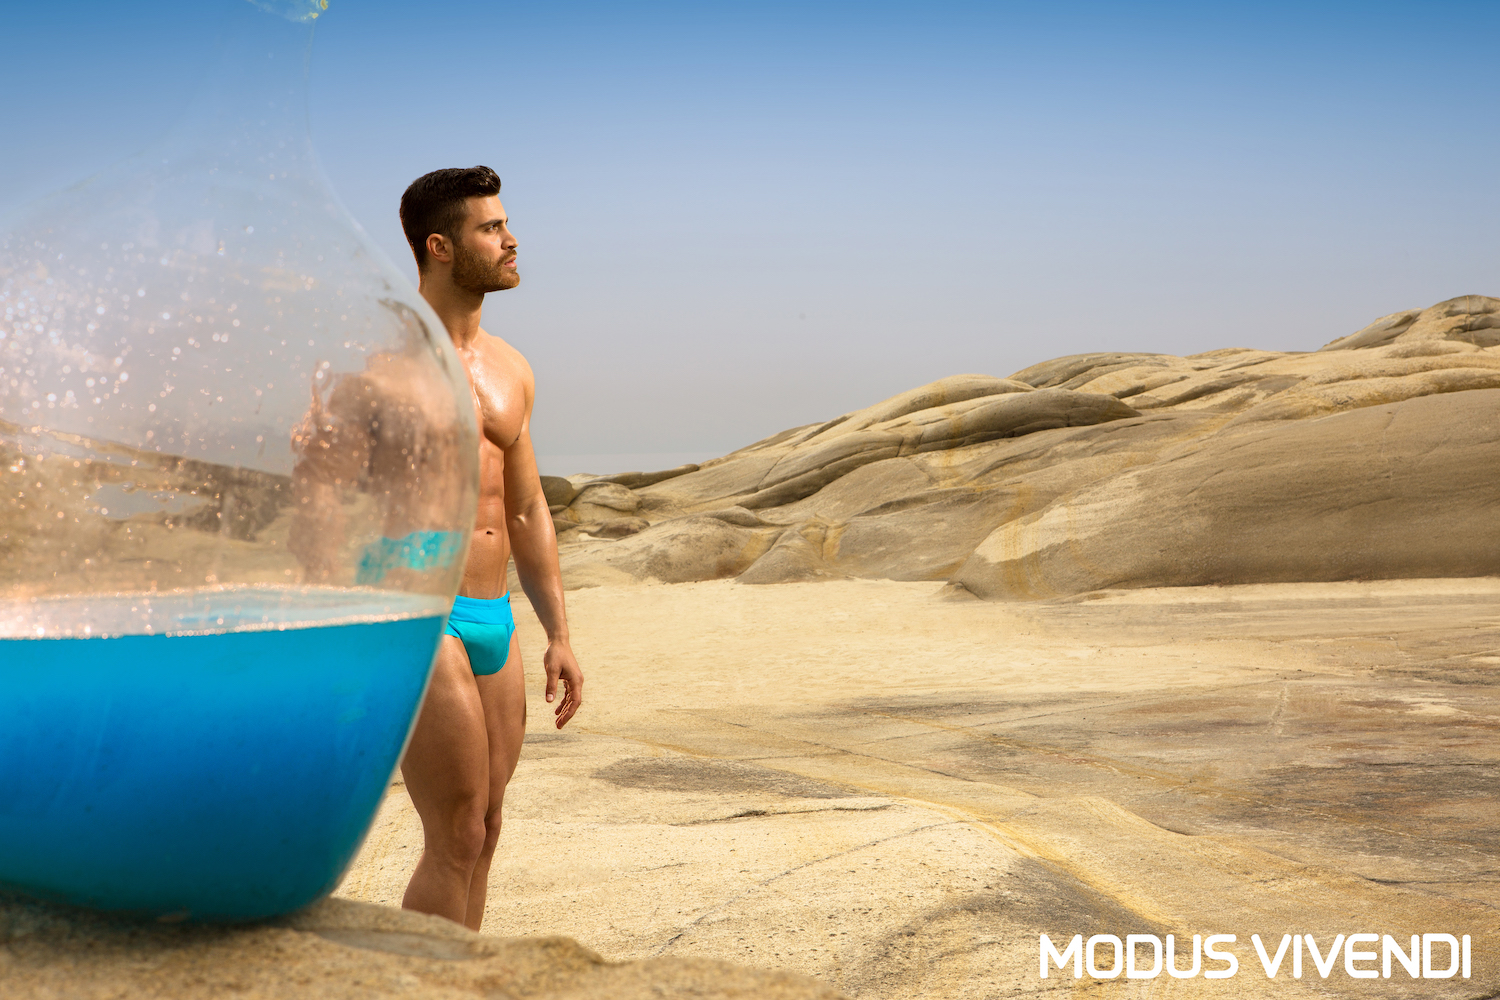 Modus Vivendi - New swimwear collection (Contrast and Towel lines)